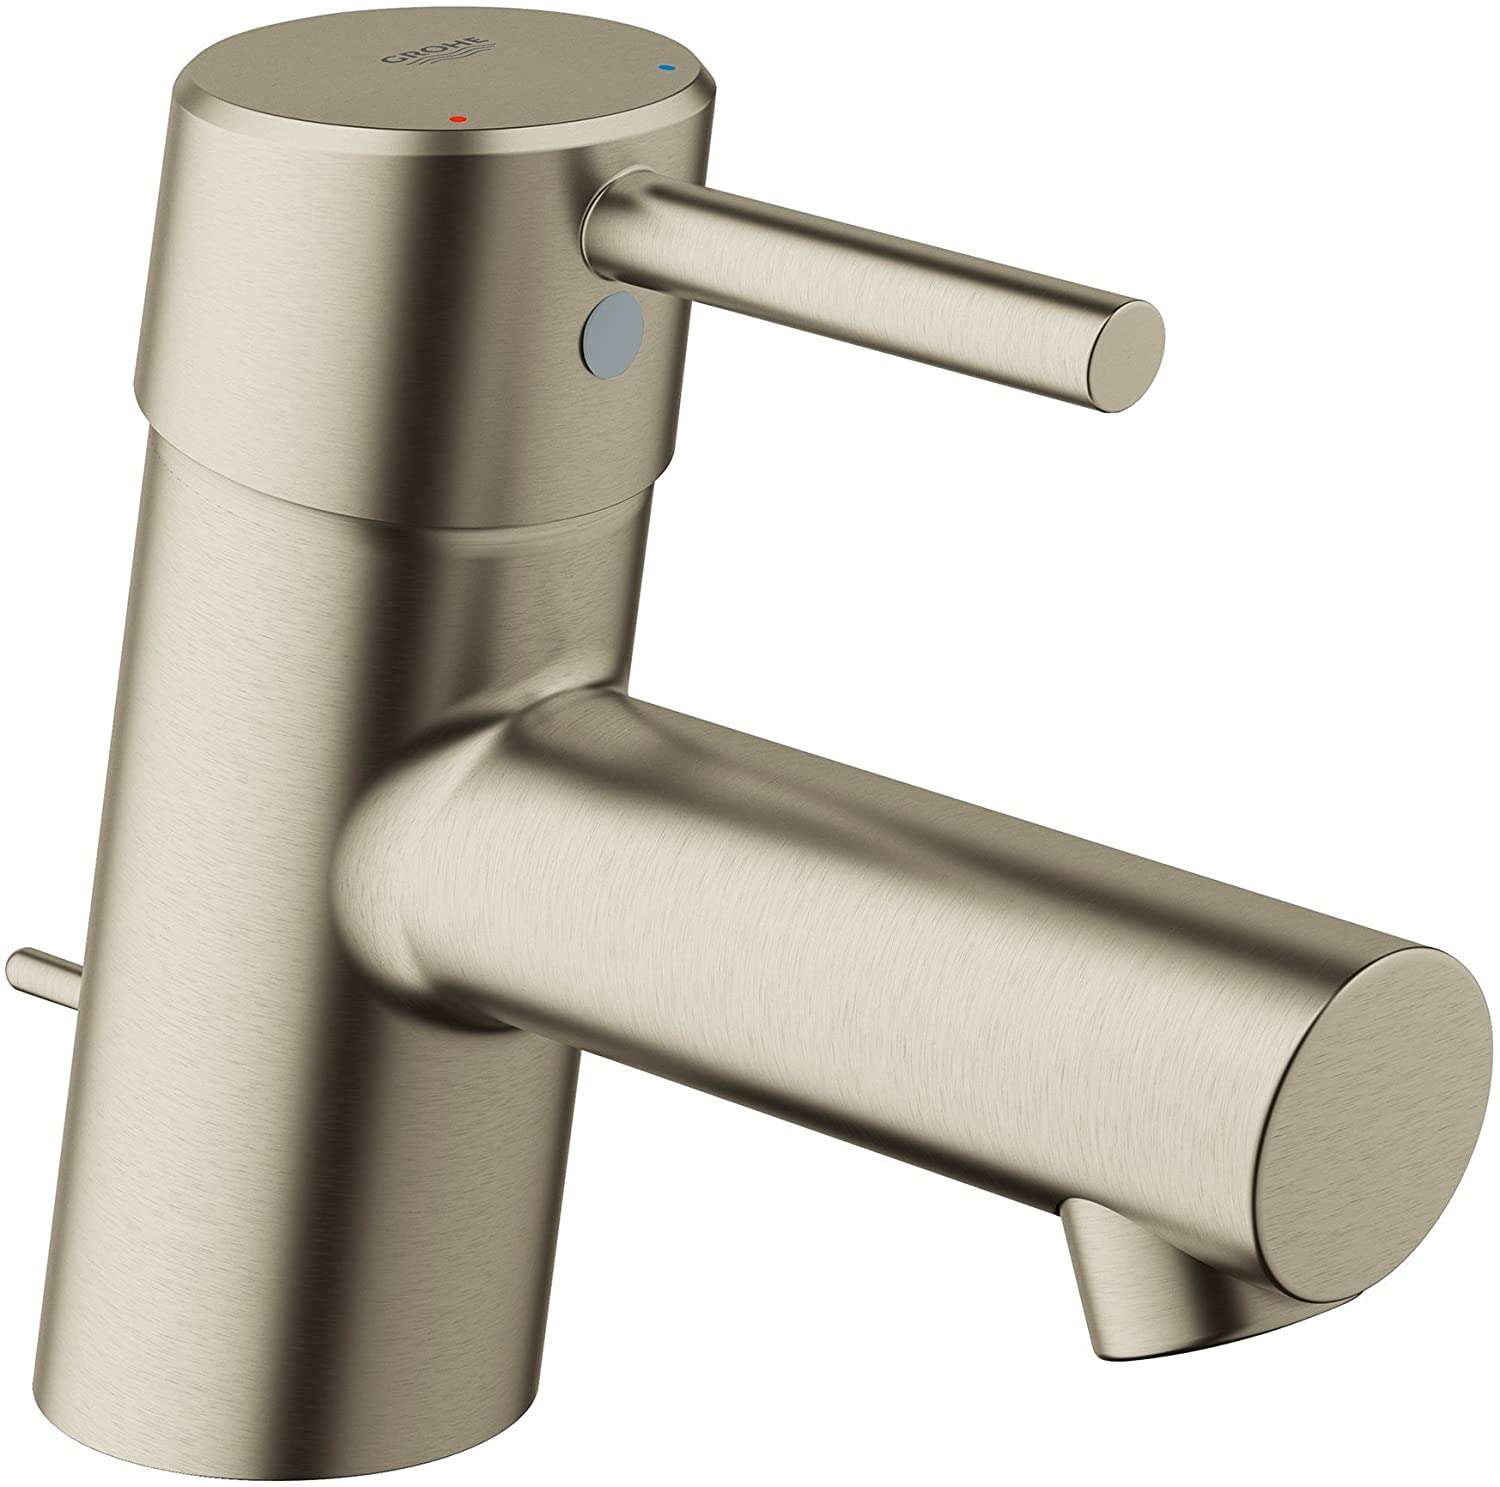 Grohe 34702EN1 Concetto Hole Single-Handle Bathroom Faucet with Drain Assembly in Brushed Nickel